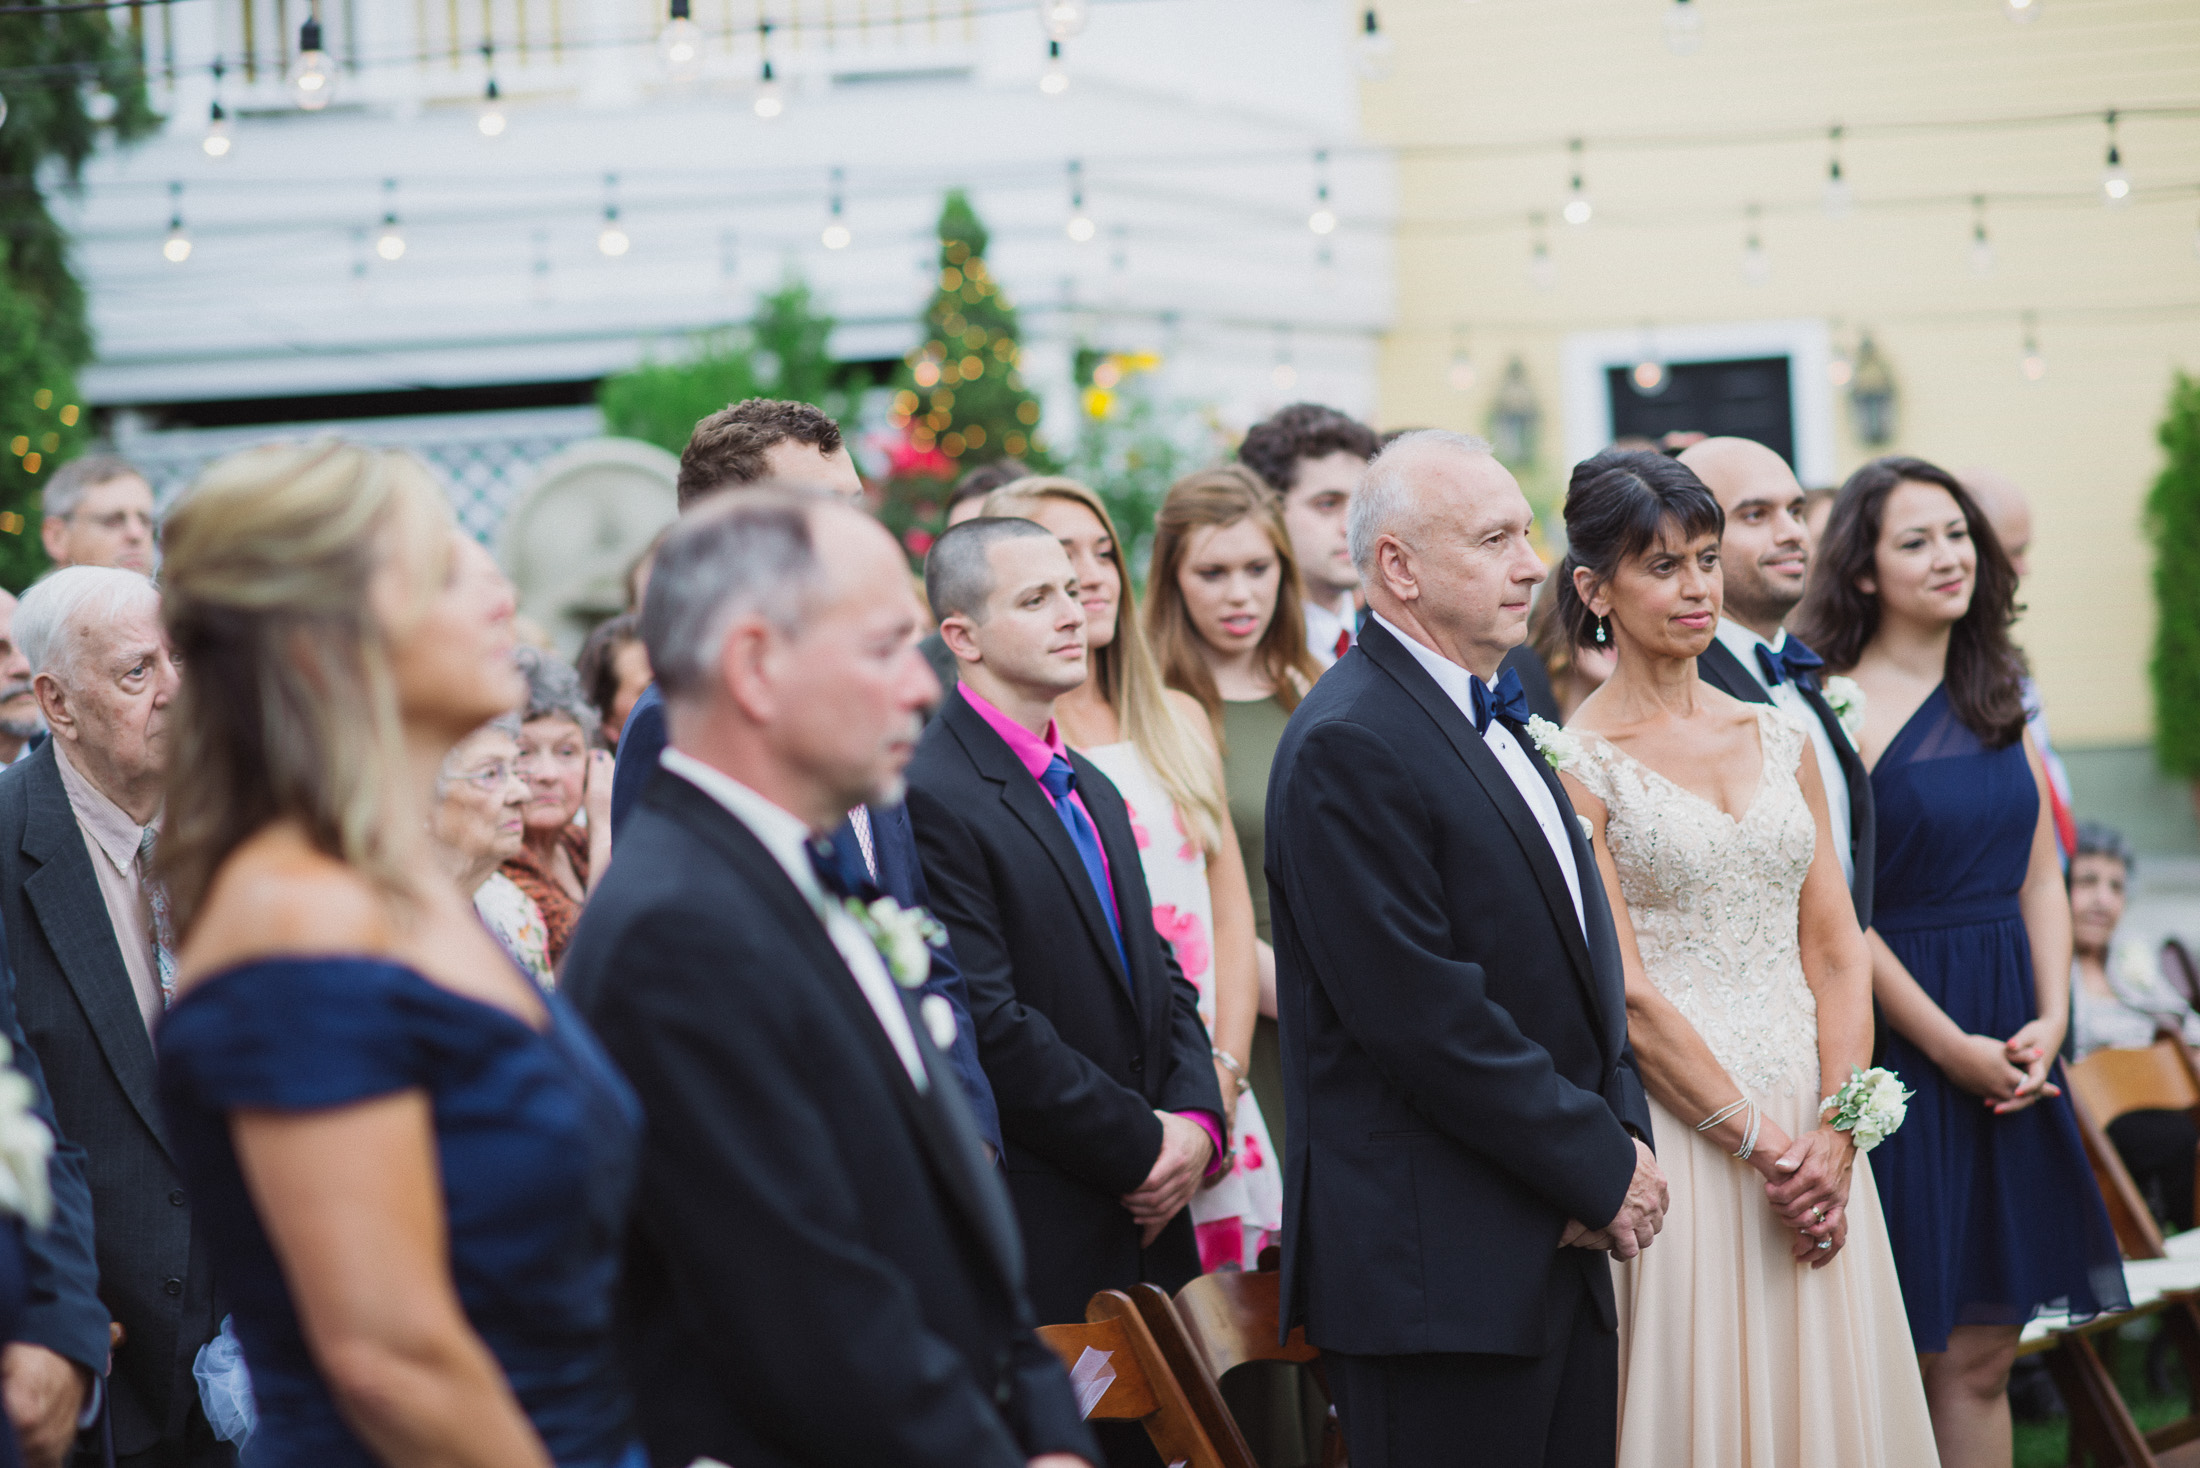 NH Wedding Photography: parents watching bride and groom